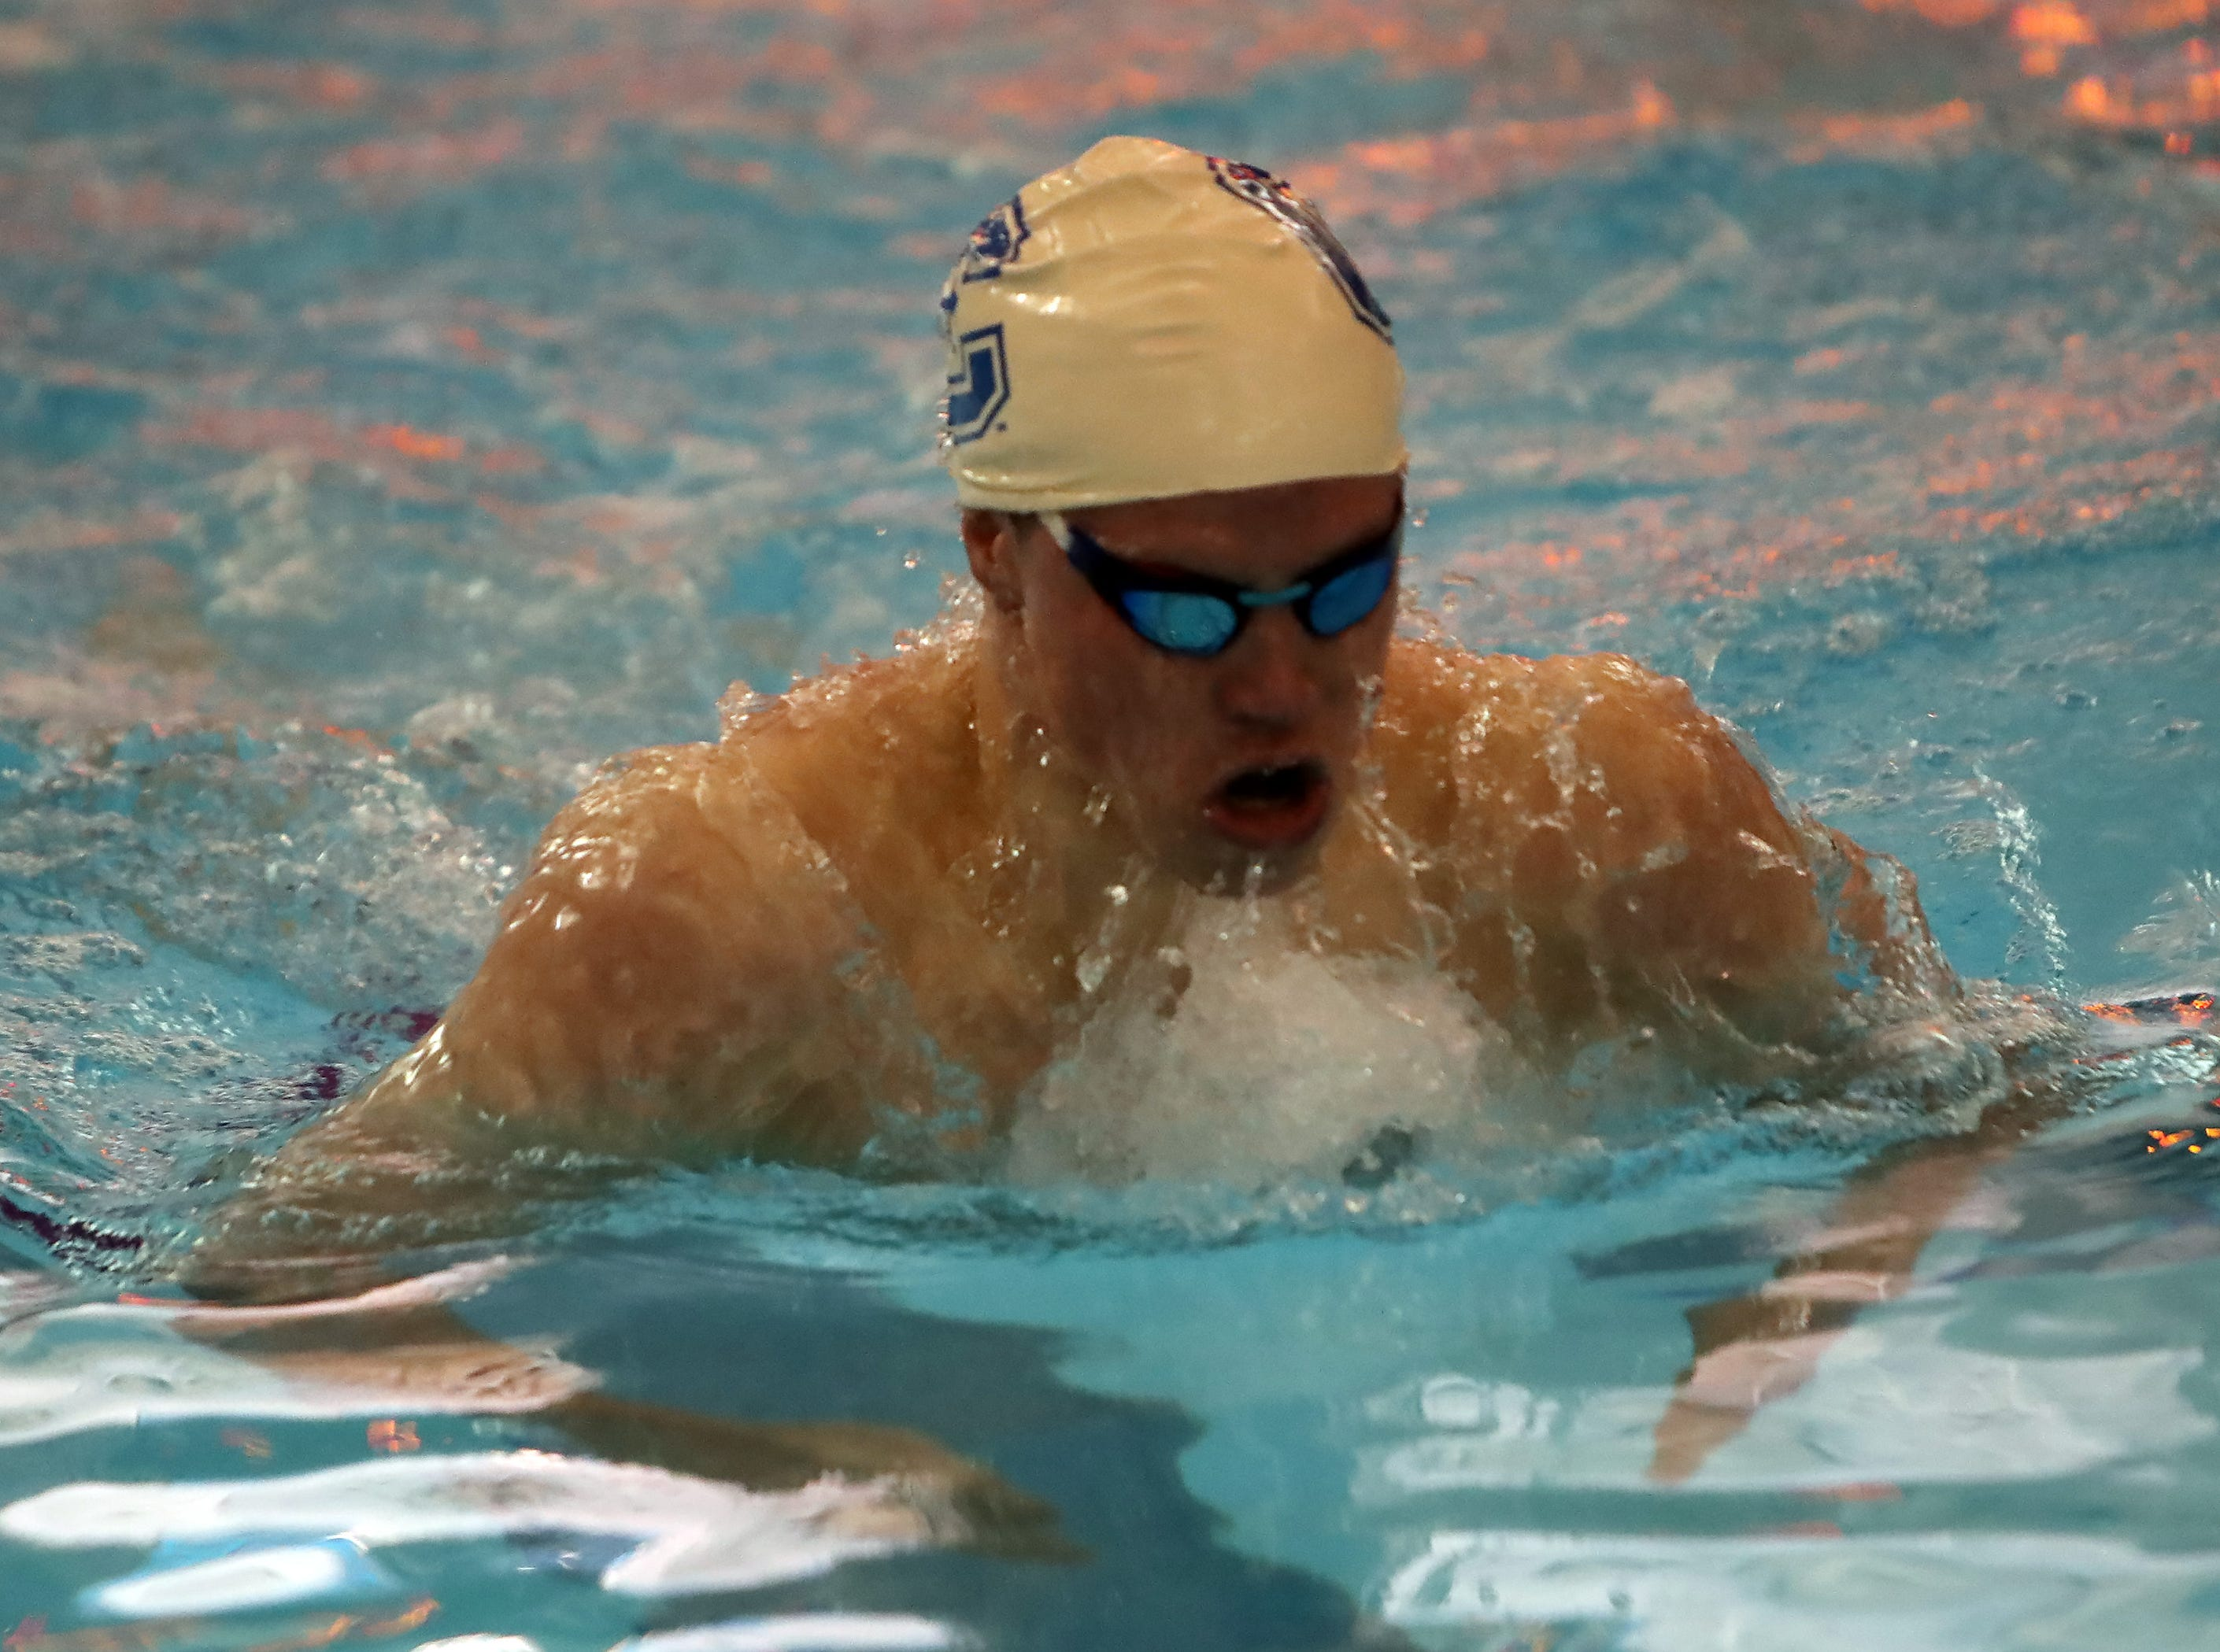 Covington Catholic's Ethan Hanna wins the Boys 200 Yard IM at the  Regional Final at the KHSAA Regional Swimming Finals in Erlanger, Kentucky.